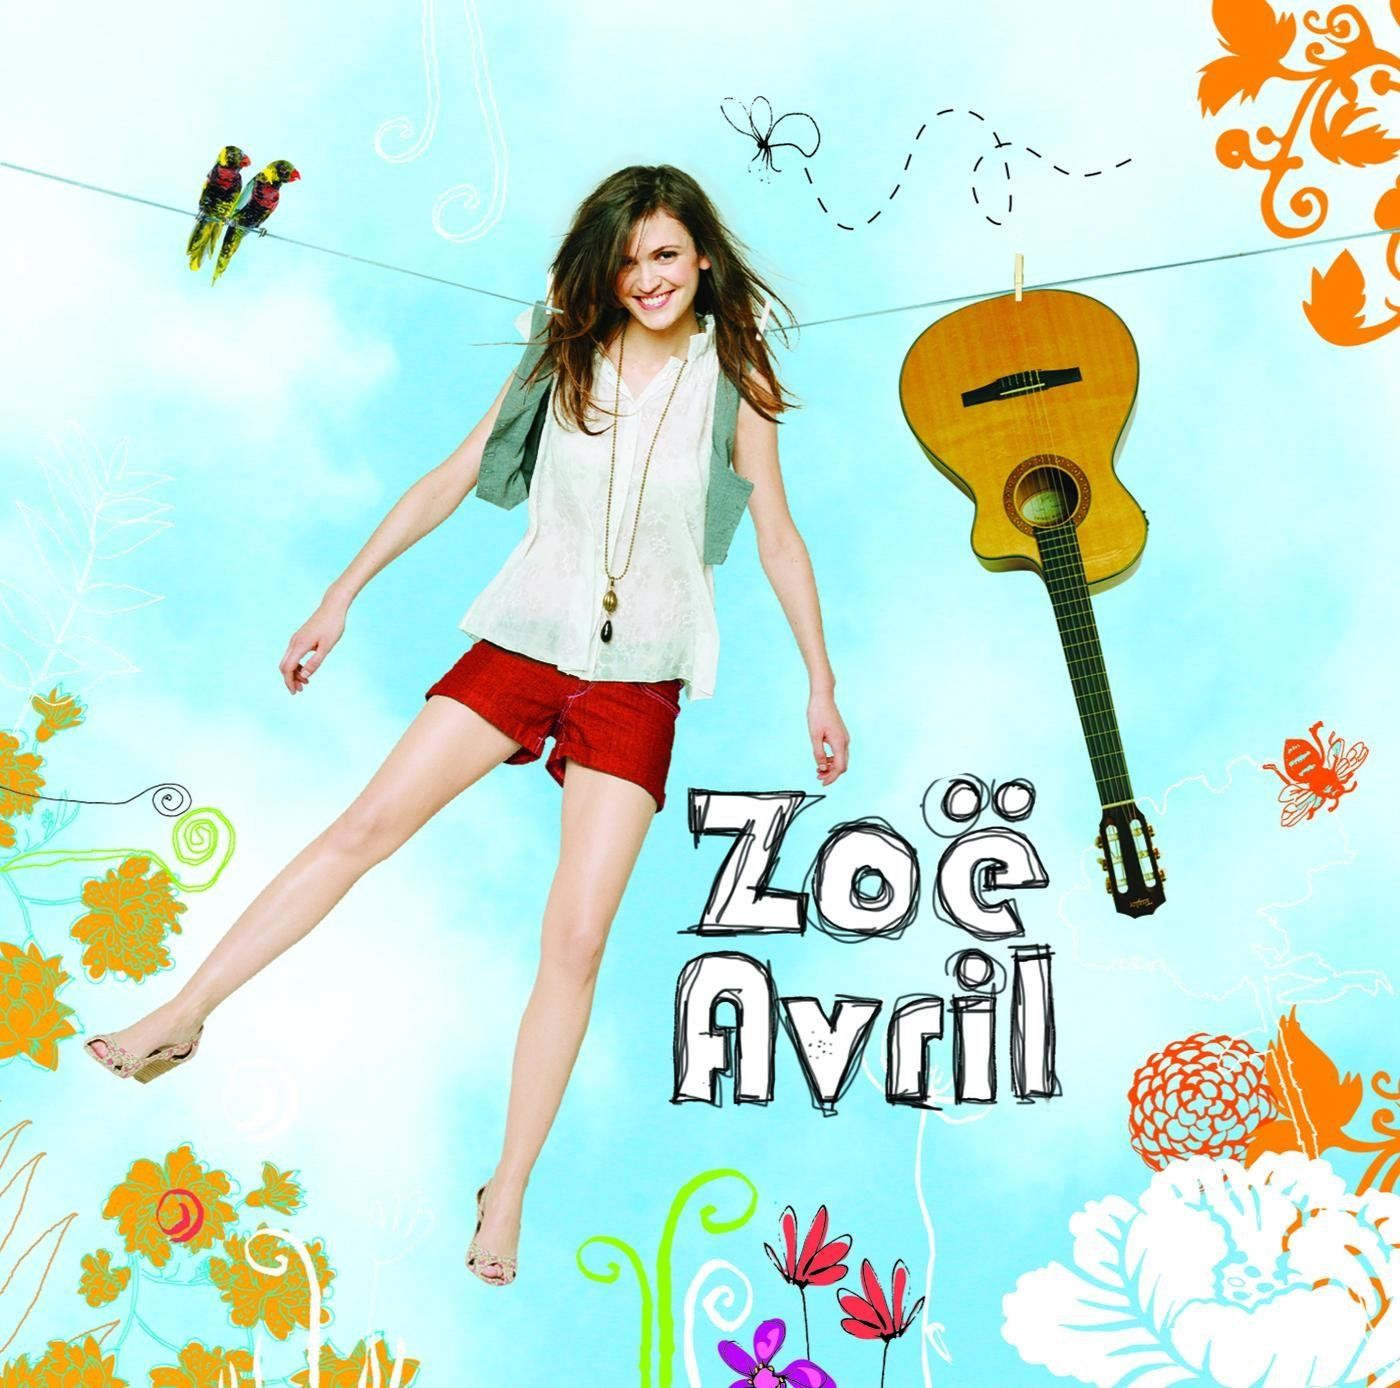 Zoë Avril - Zoë Avril album cover